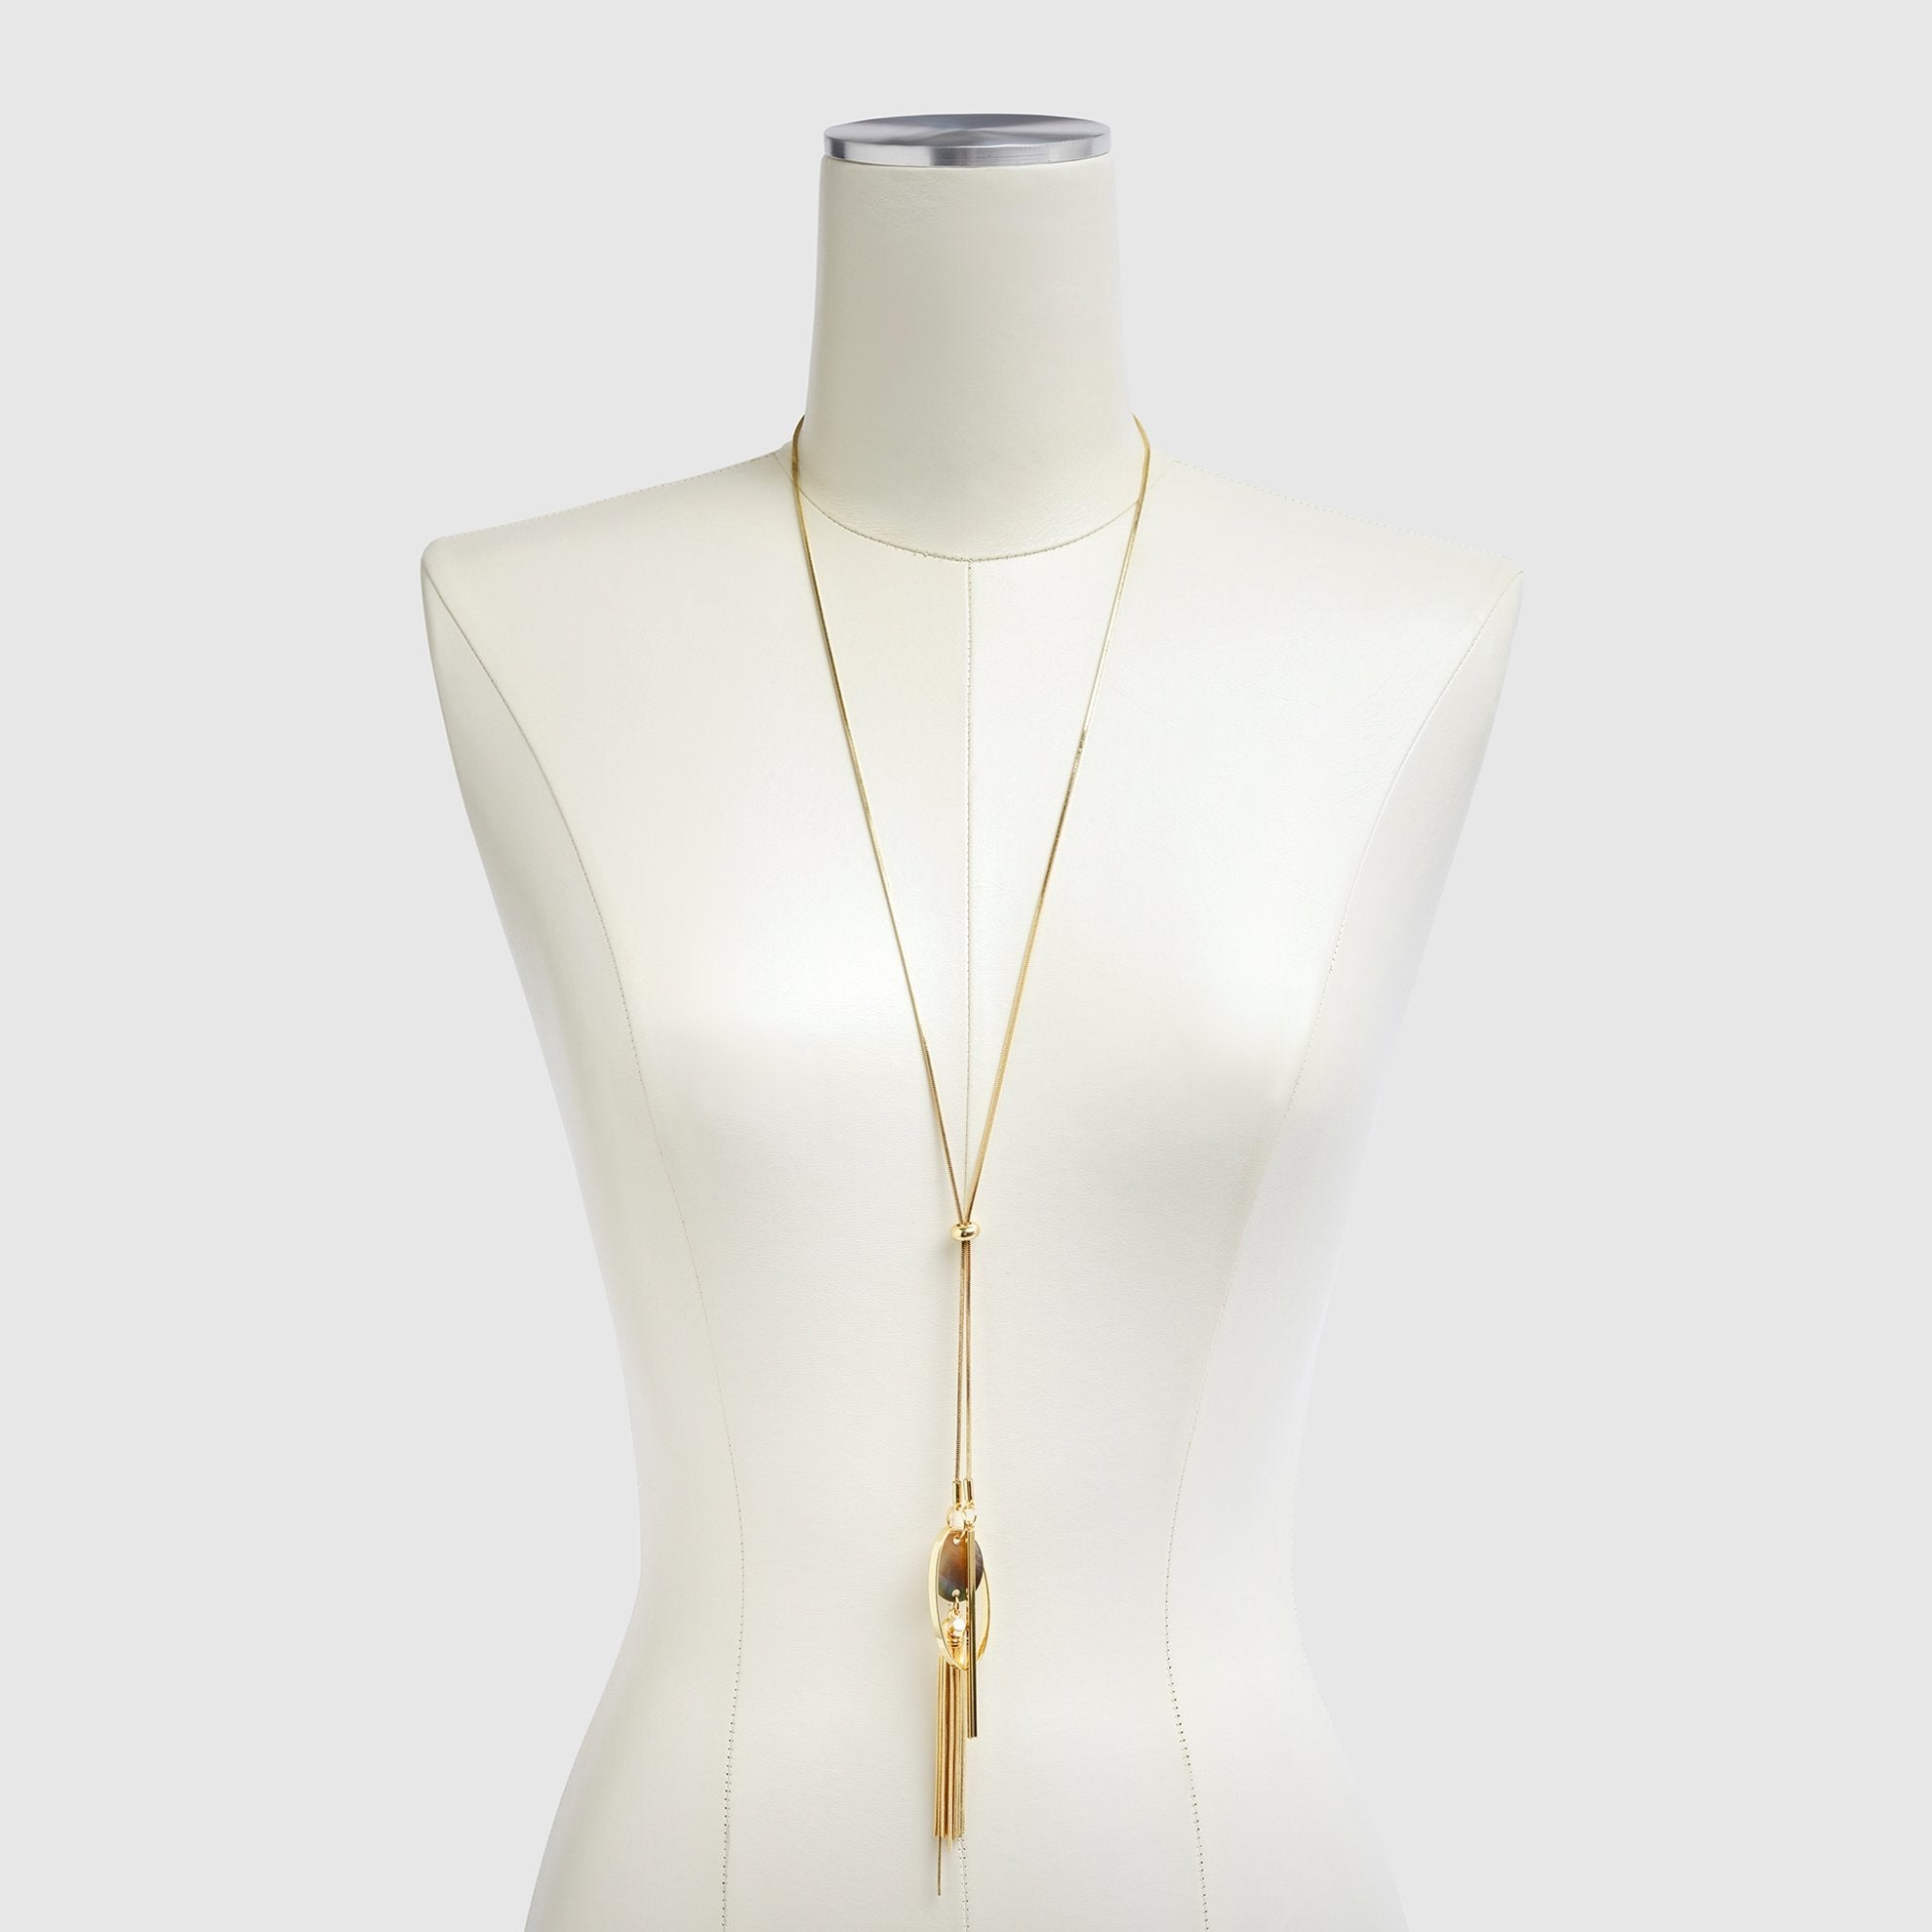 Long Chain Necklace on Dress Form